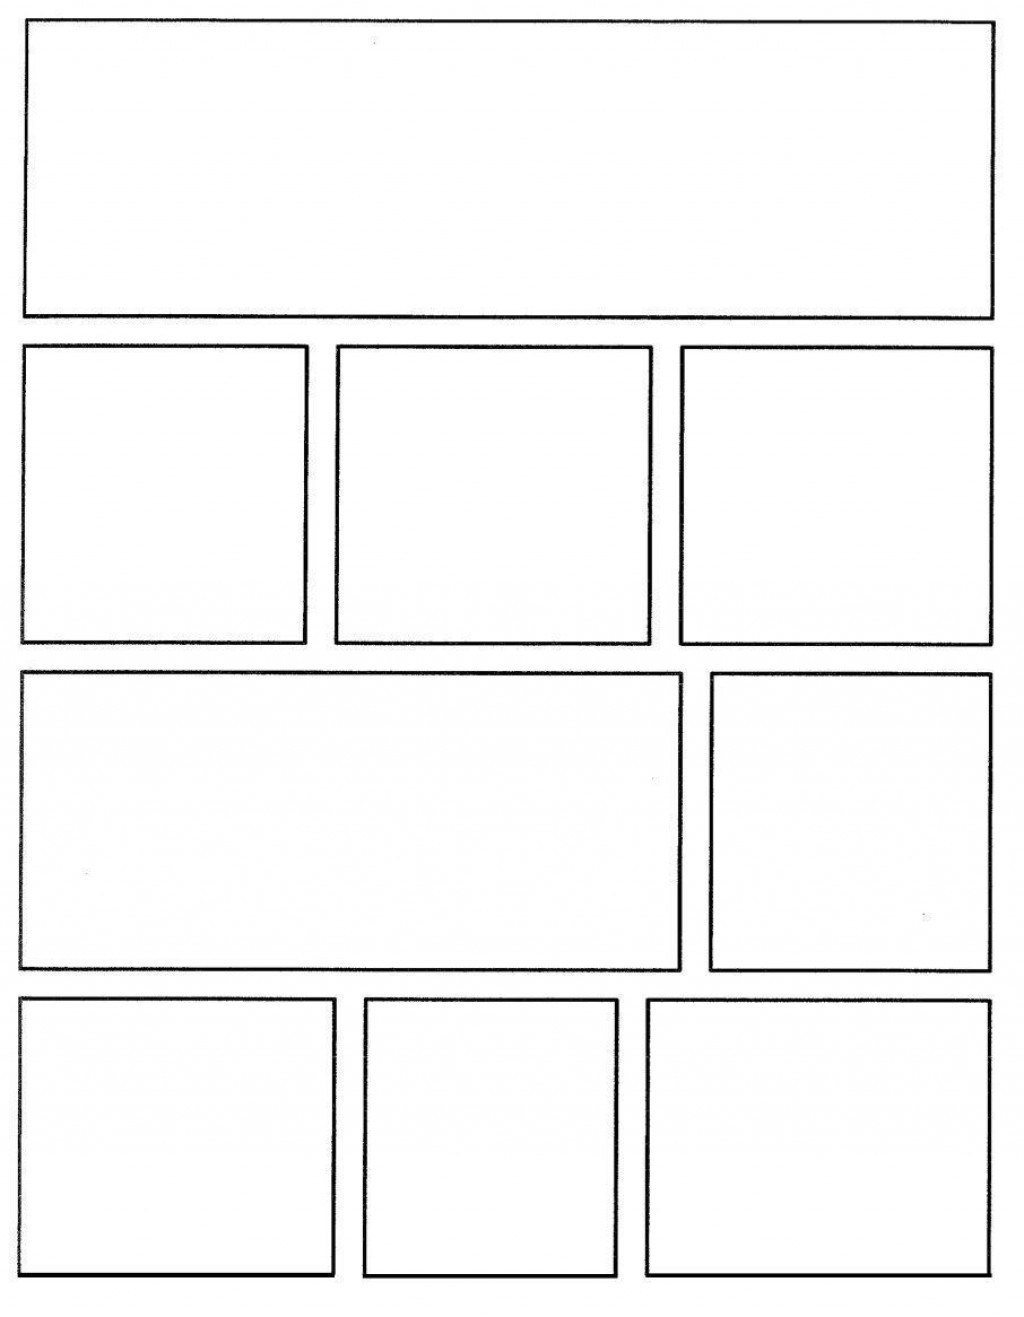 006 Shocking Comic Strip Template Word Doc Highest Quality Large